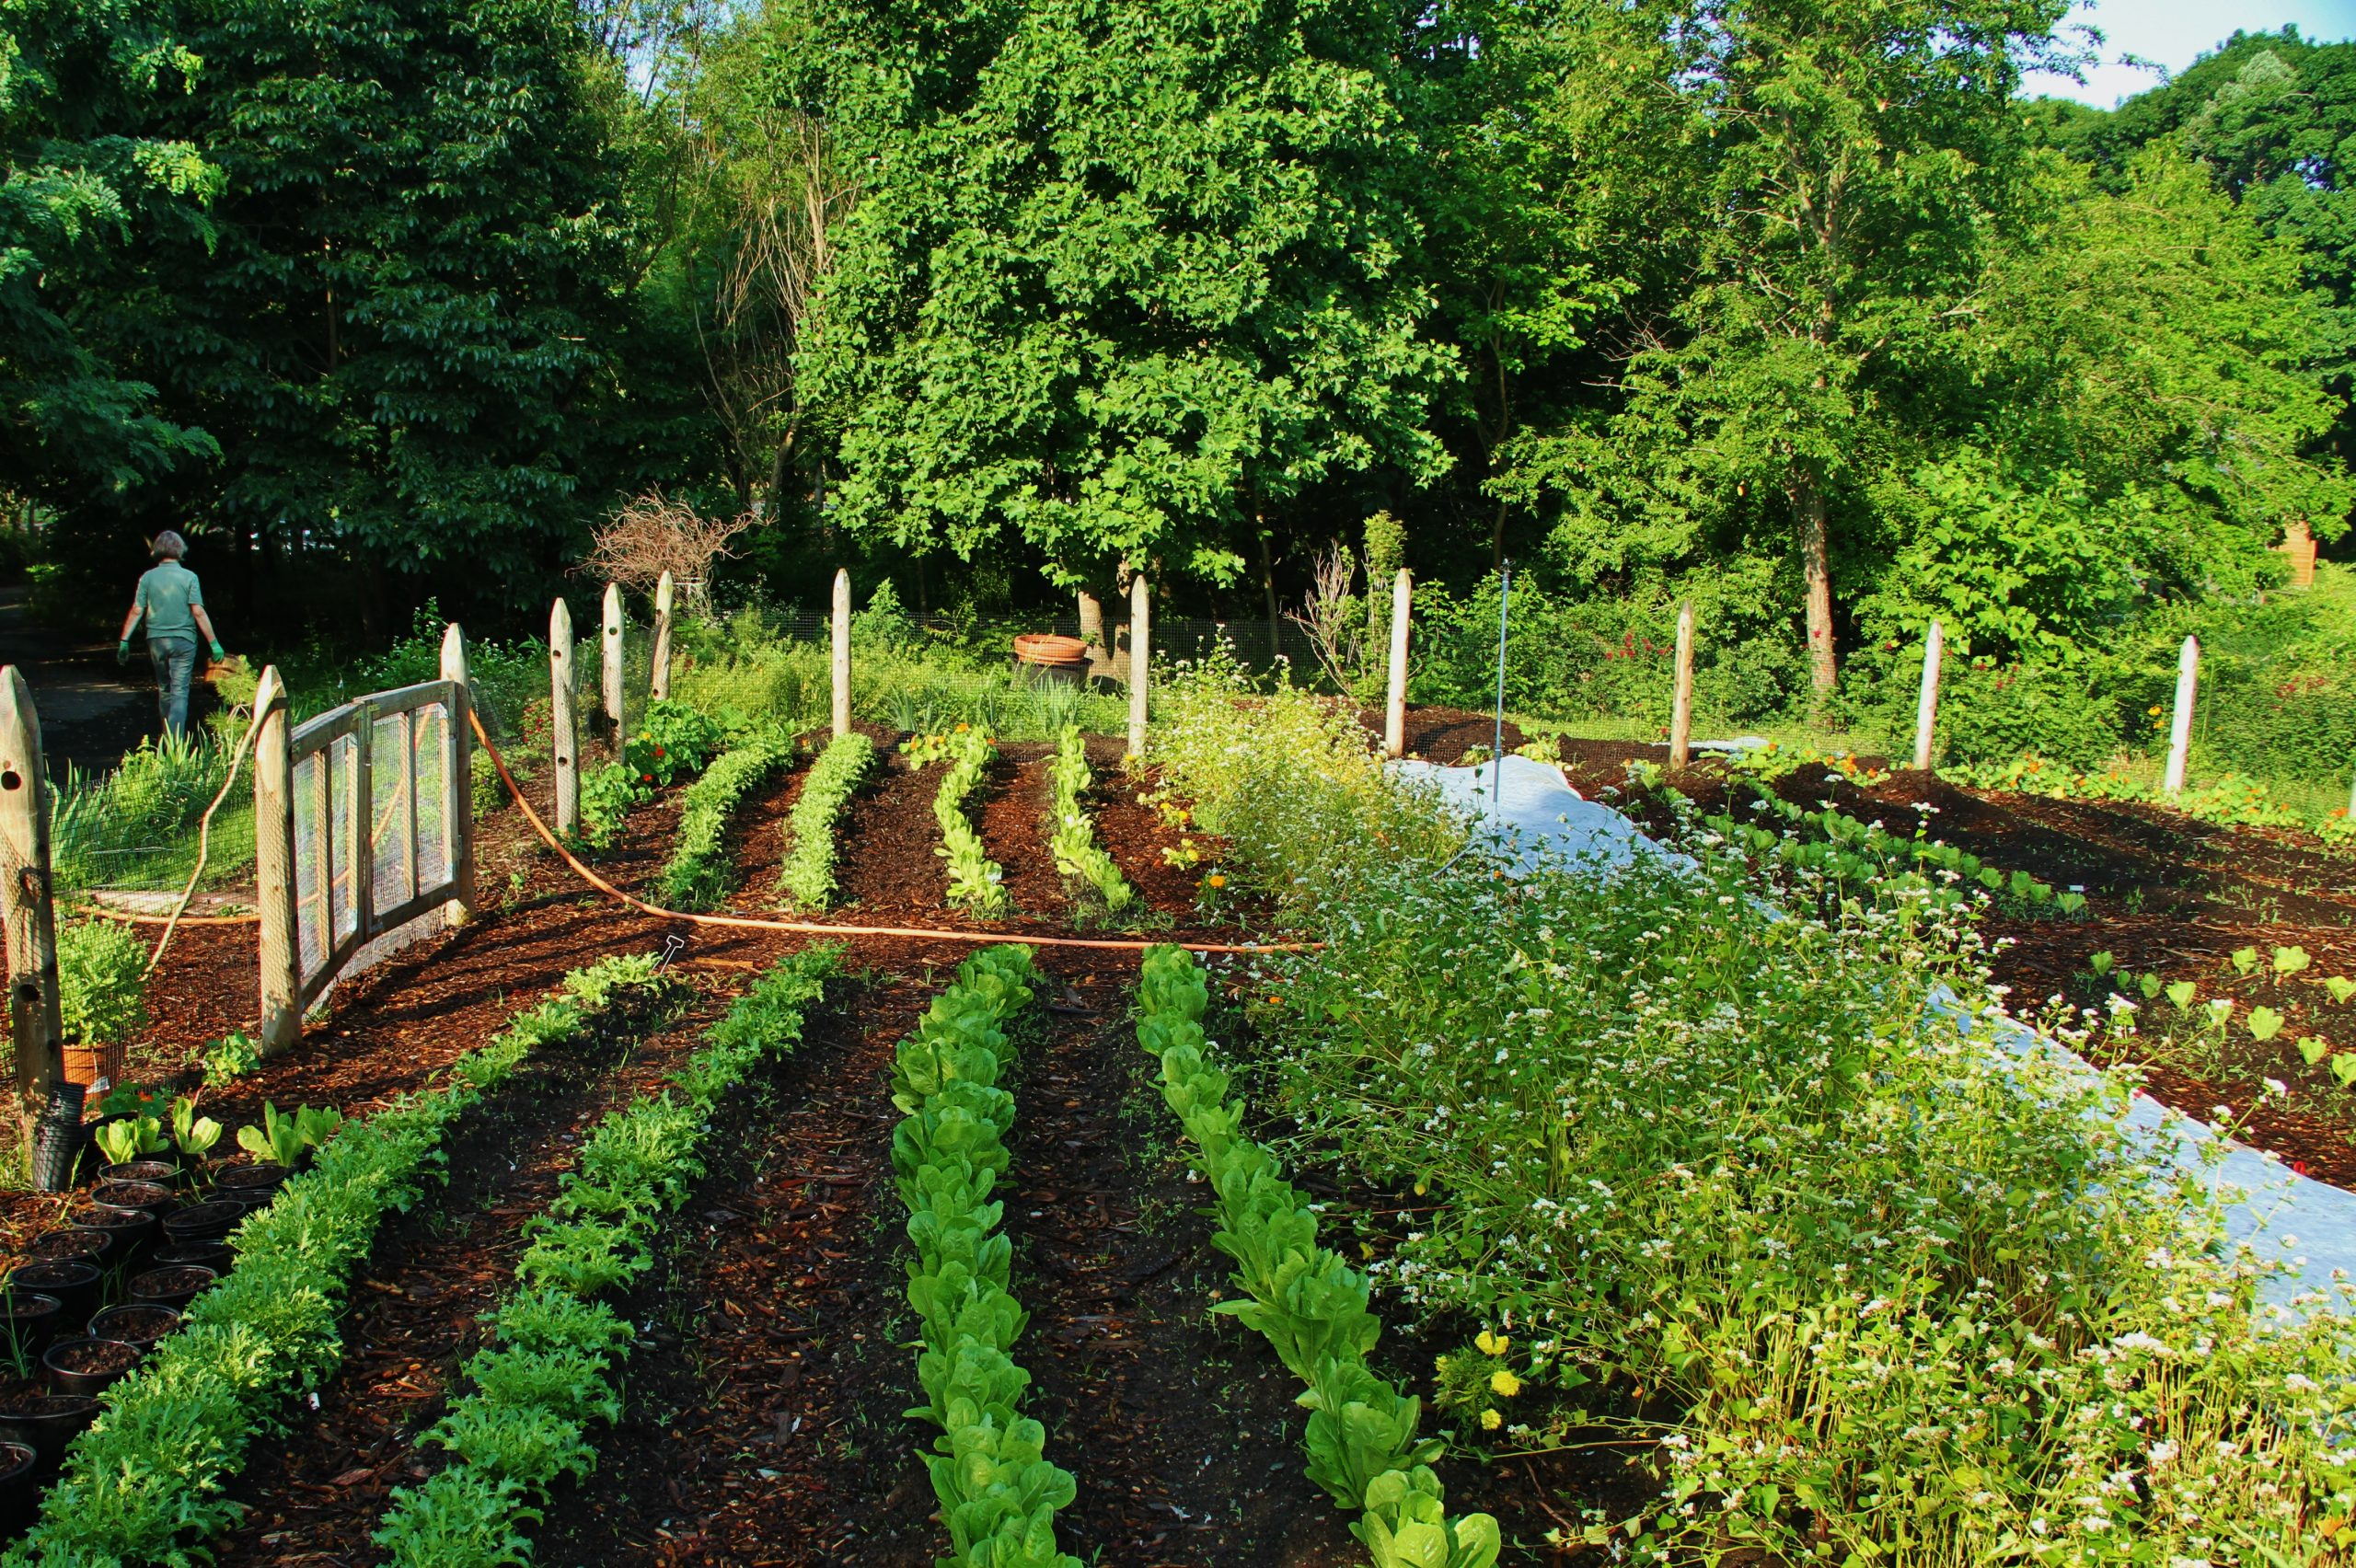 """An organic garden at Franklin Park Zoo. Franklin Park Zoo is a 72-acre site nestled in Boston's historic Franklin Park, long considered the """"crown jewel"""" of Frederick Law Olmsted's Emerald Necklace Park System. Photo credit: courtesy of Zoo New England."""